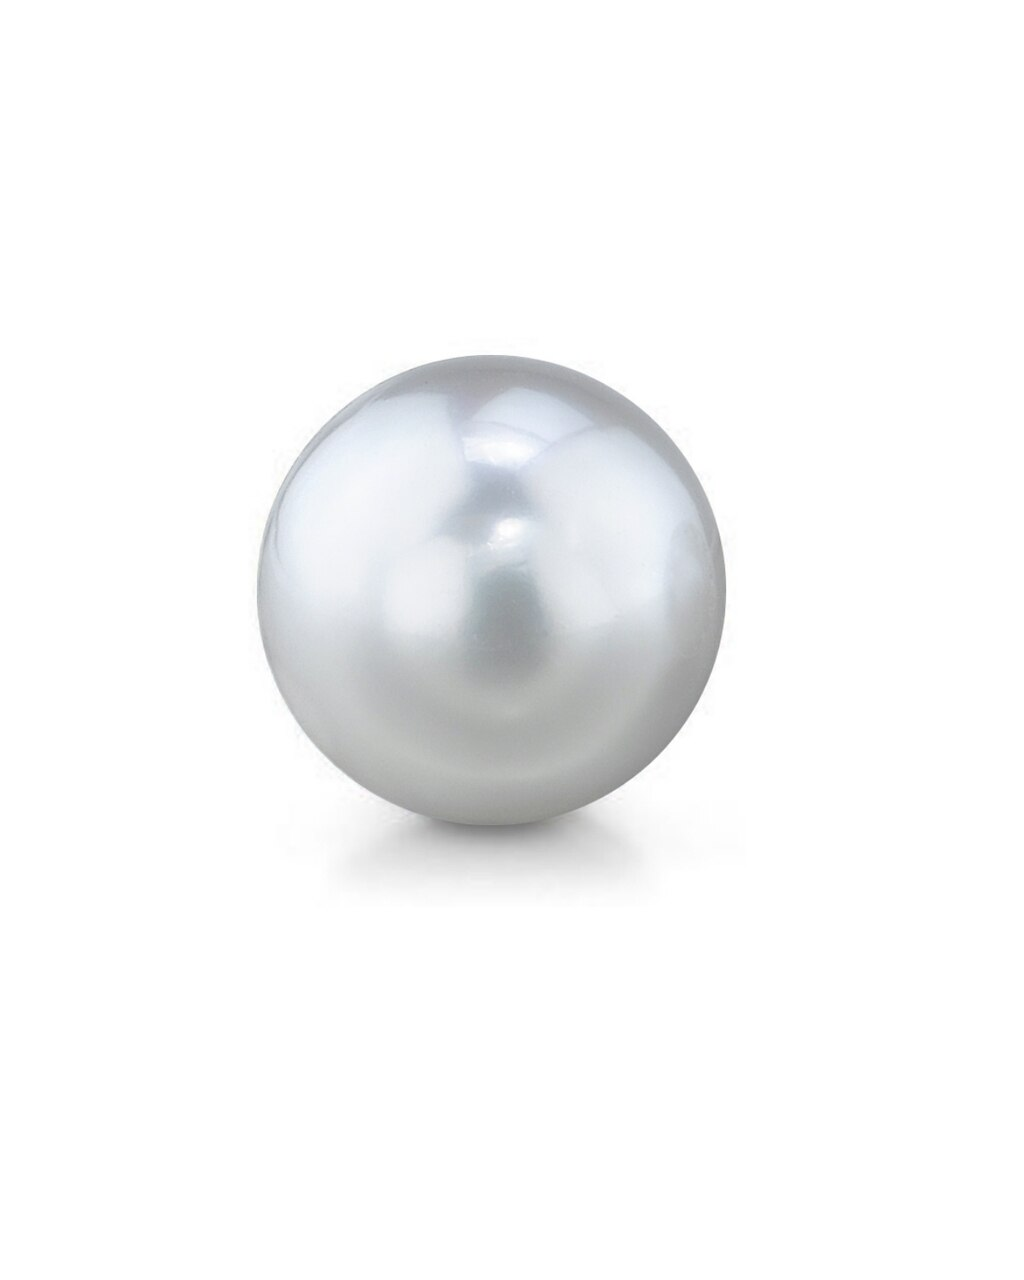 This loose White South Sea pearl is 10.0mm in size